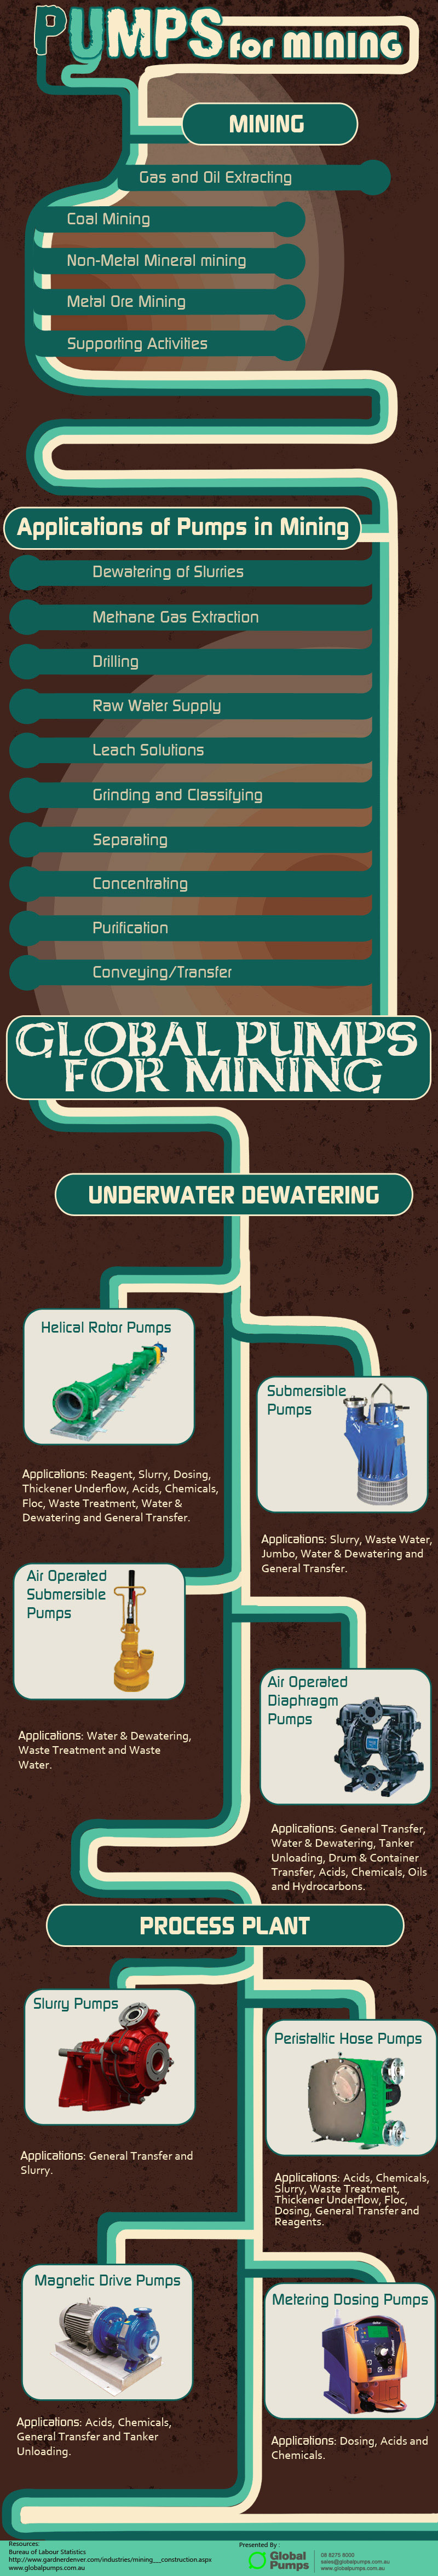 Pumps-for-Mining-by-Global-Pumps